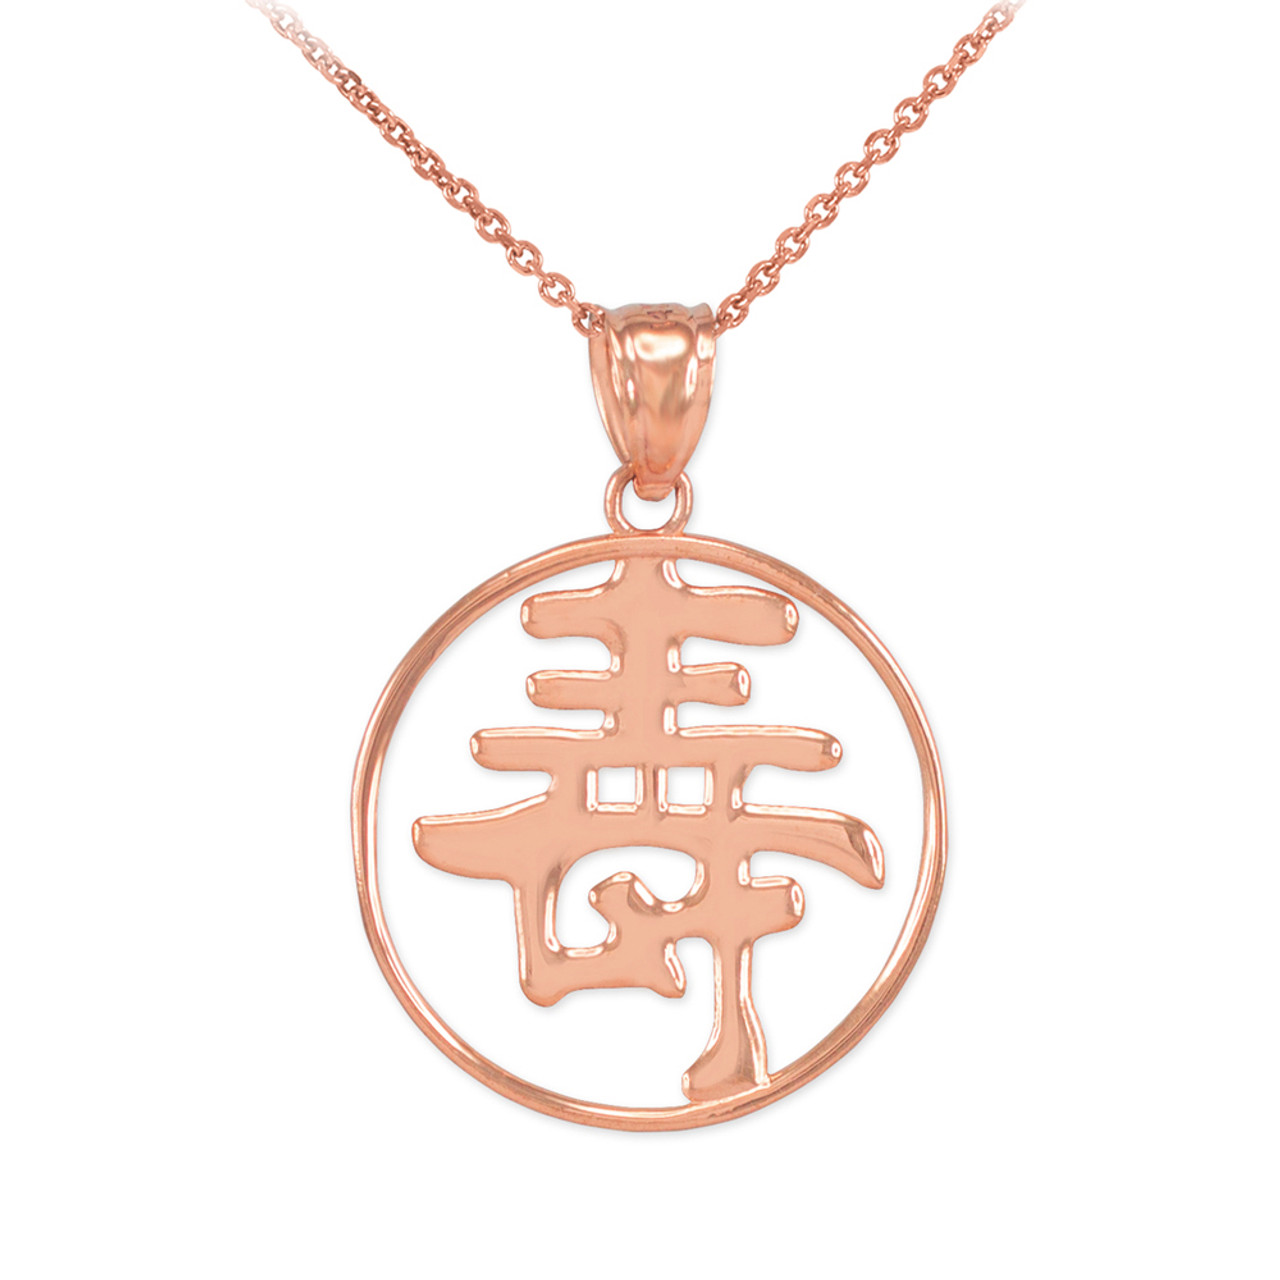 Polished rose gold chinese long life symbol open medallion pendant polished rose gold chinese long life symbol open medallion pendant necklace biocorpaavc Gallery